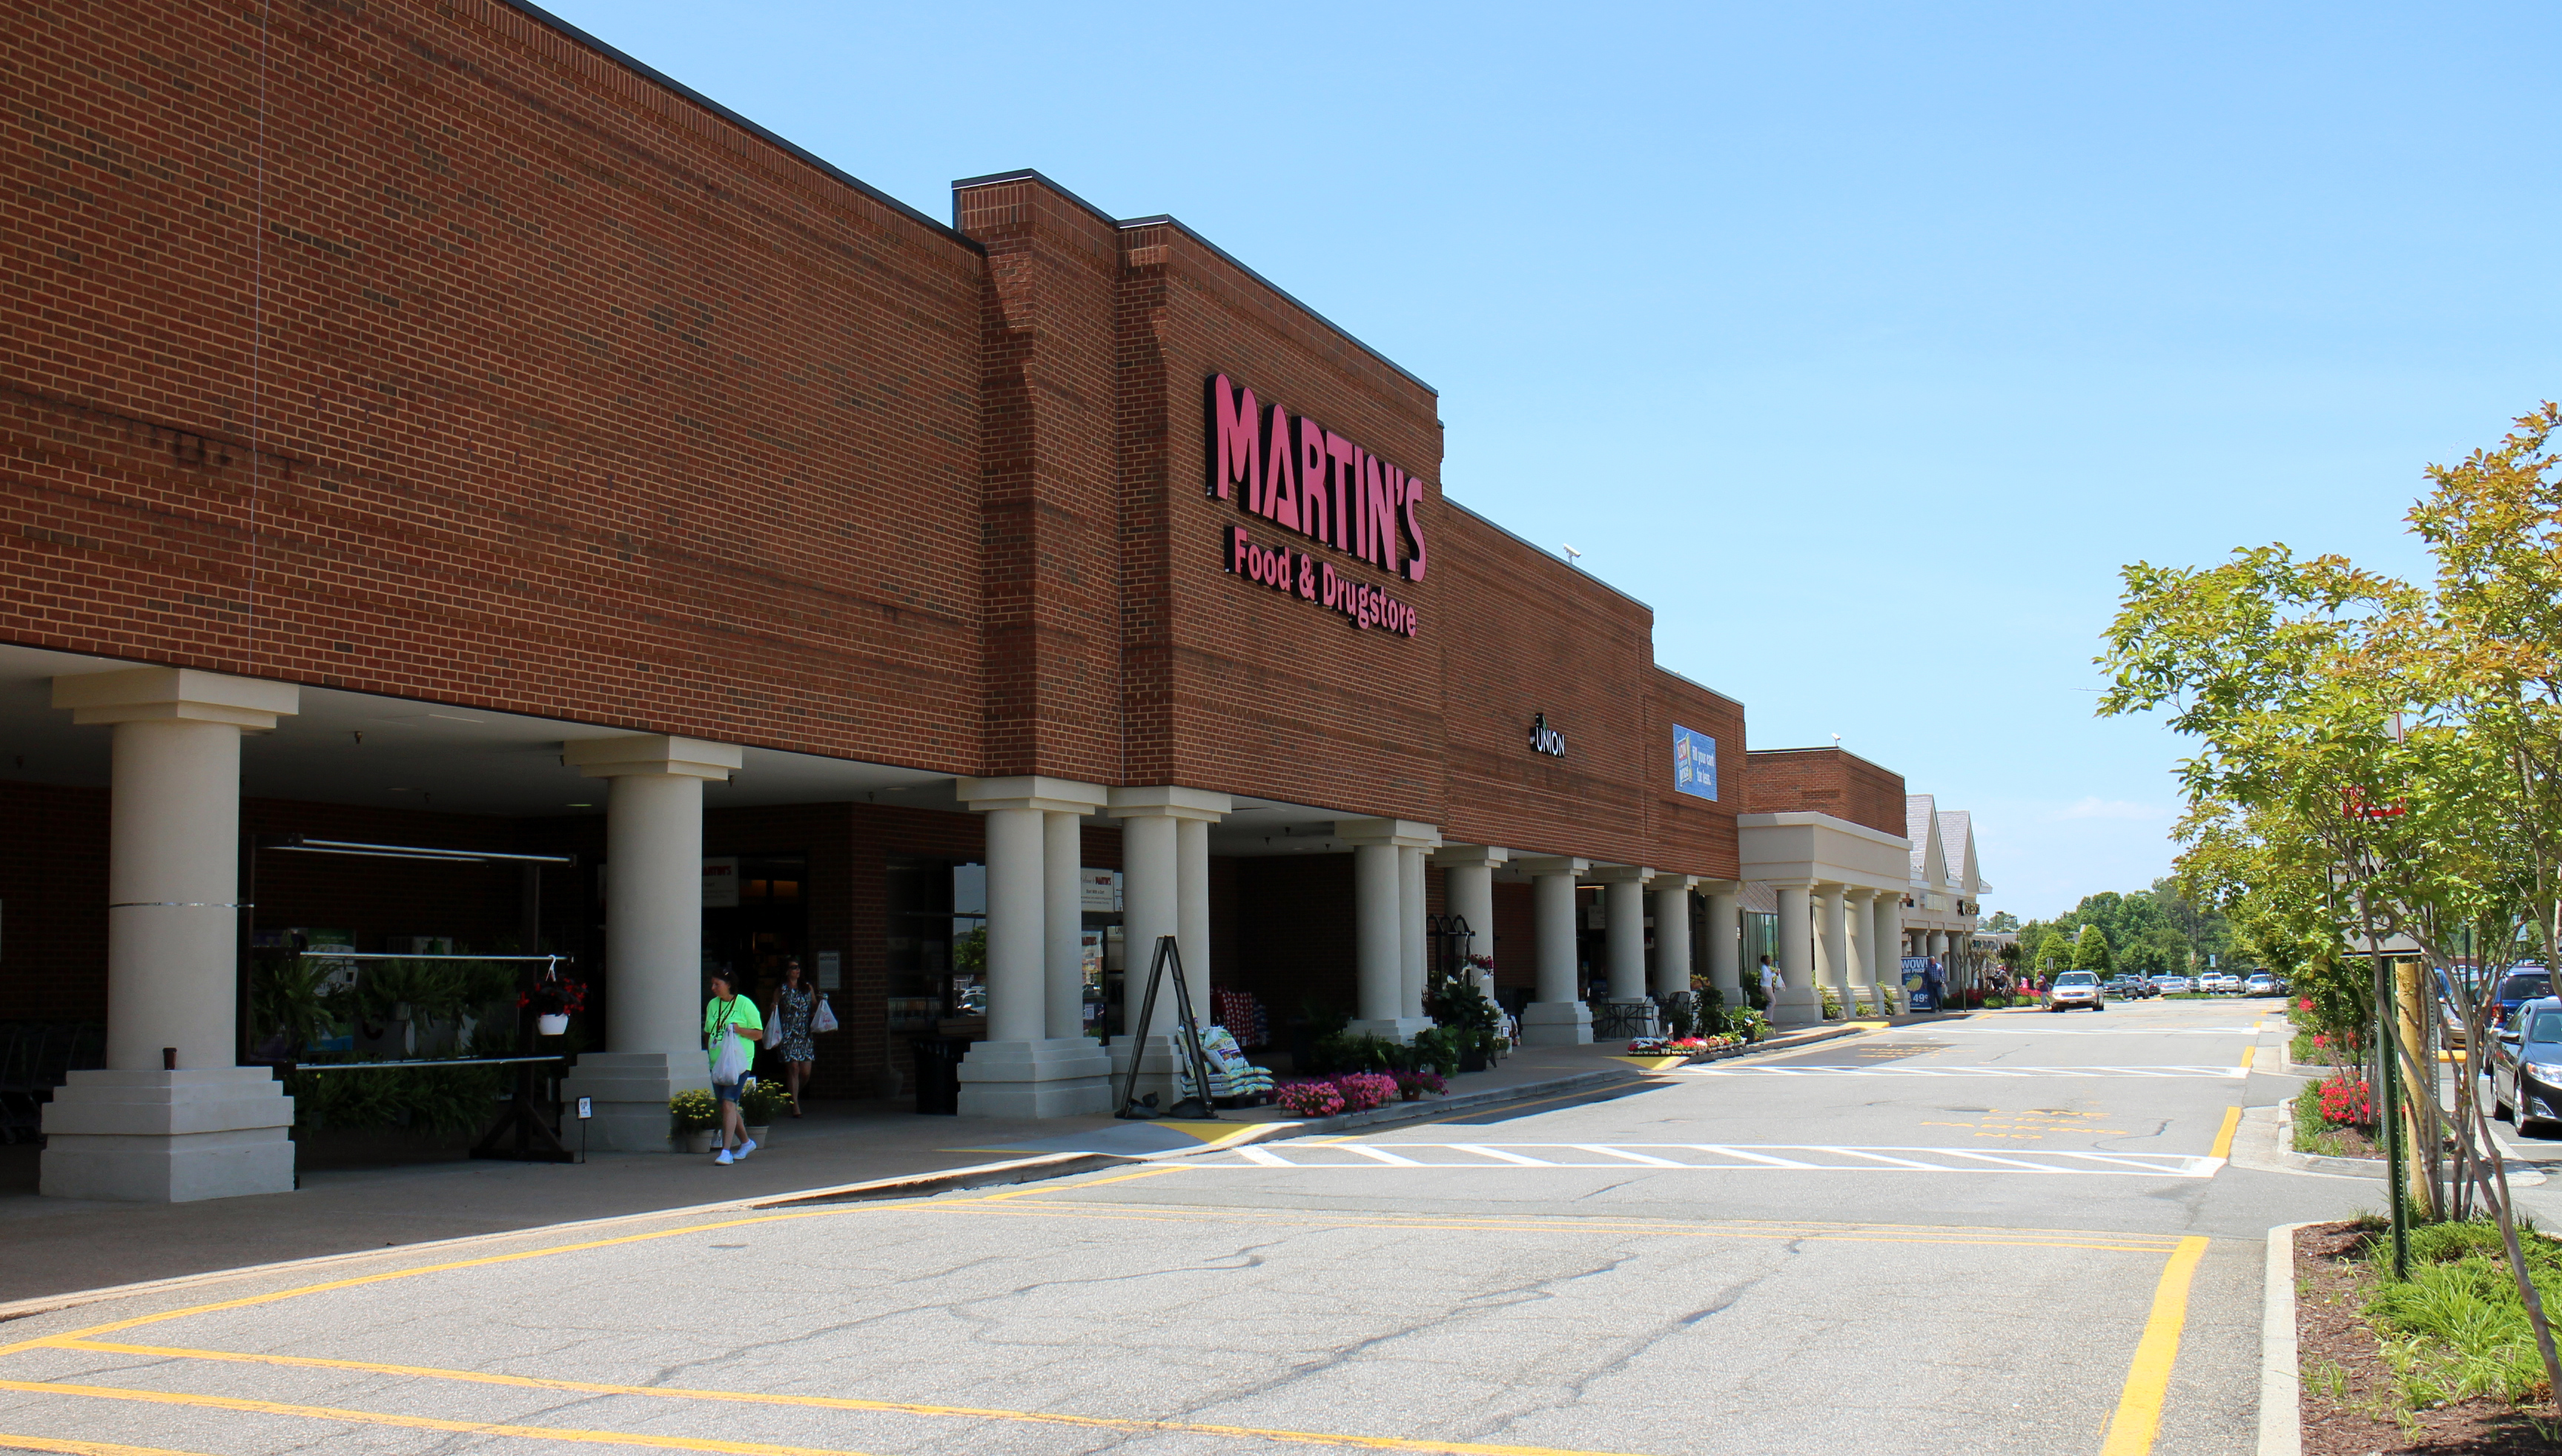 A Martin's anchors the Westpark shopping center, which changed hands last year. File photo - May 2015 - Katie Demeria.